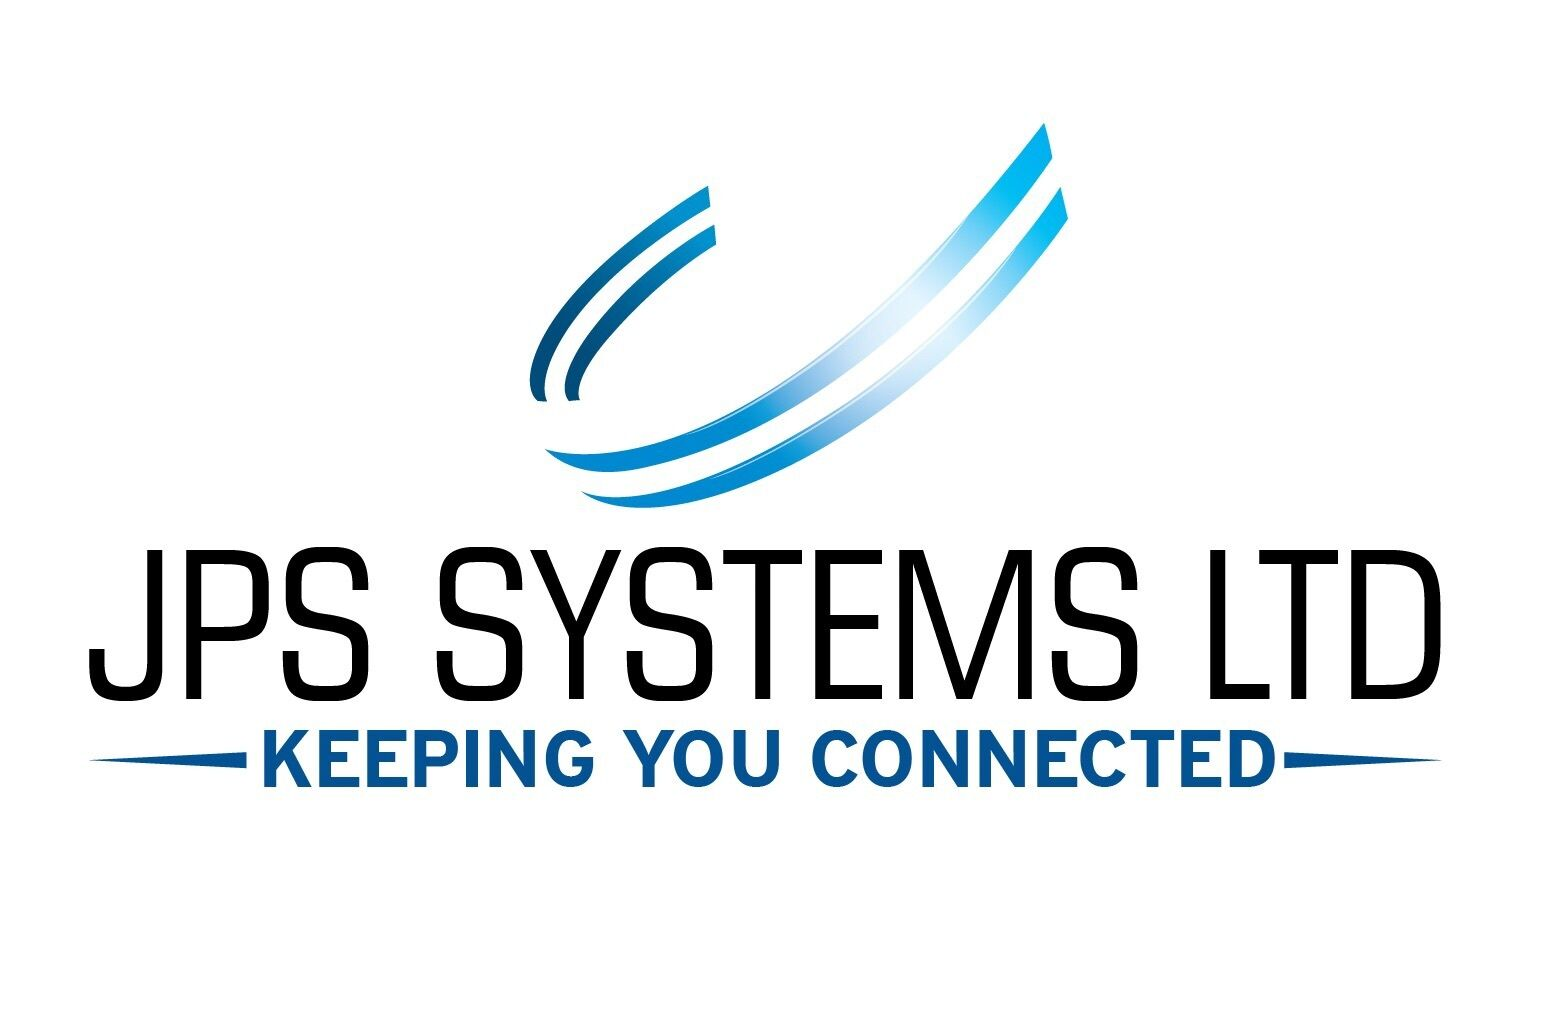 jps systems ltd